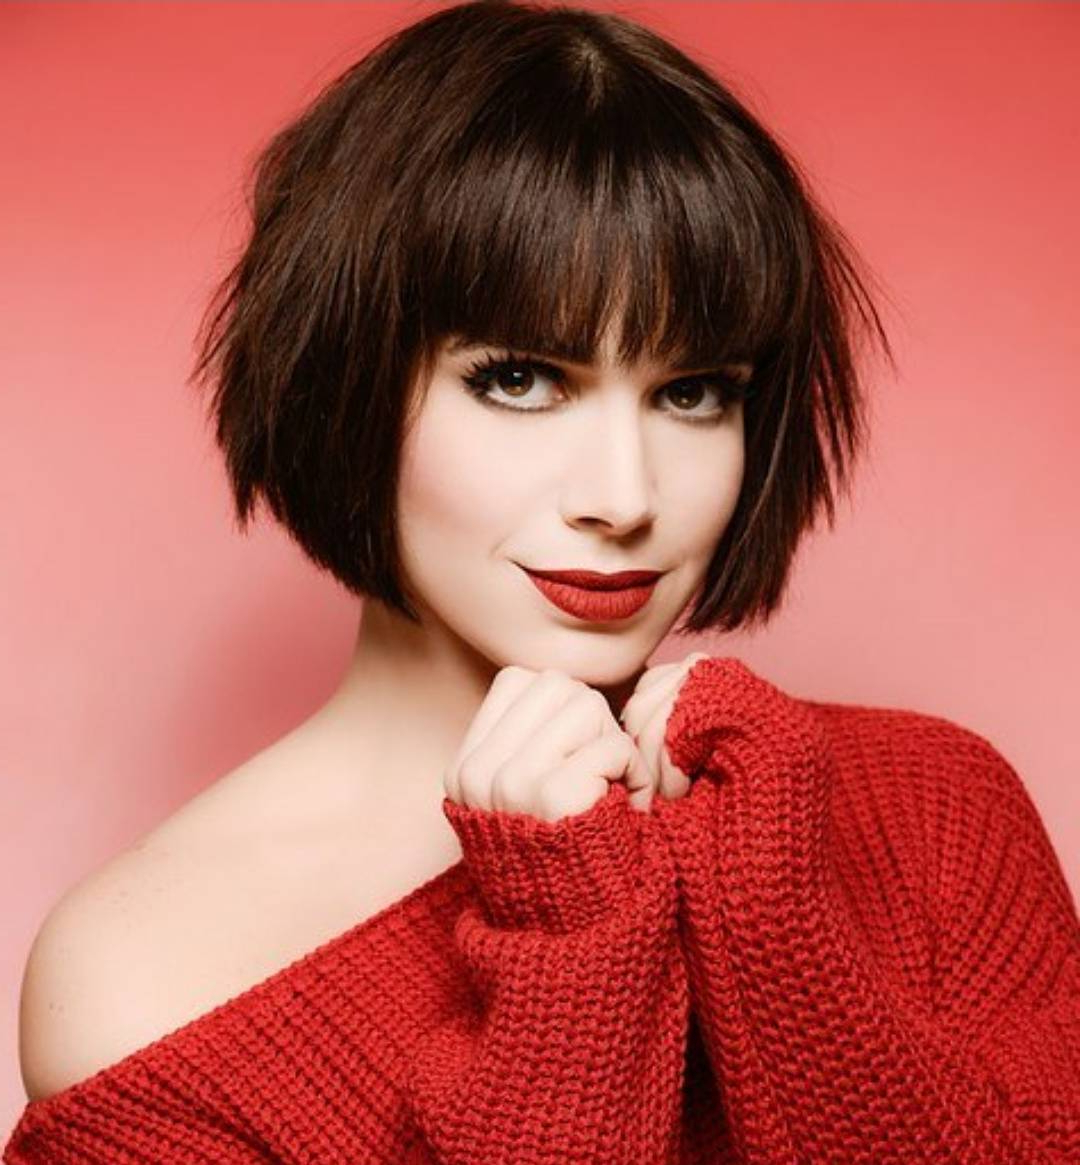 10 Chic Short Bob Haircuts That Balance Your Face Shape! – Short Intended For Textured Bob Haircuts With Bangs (View 9 of 20)